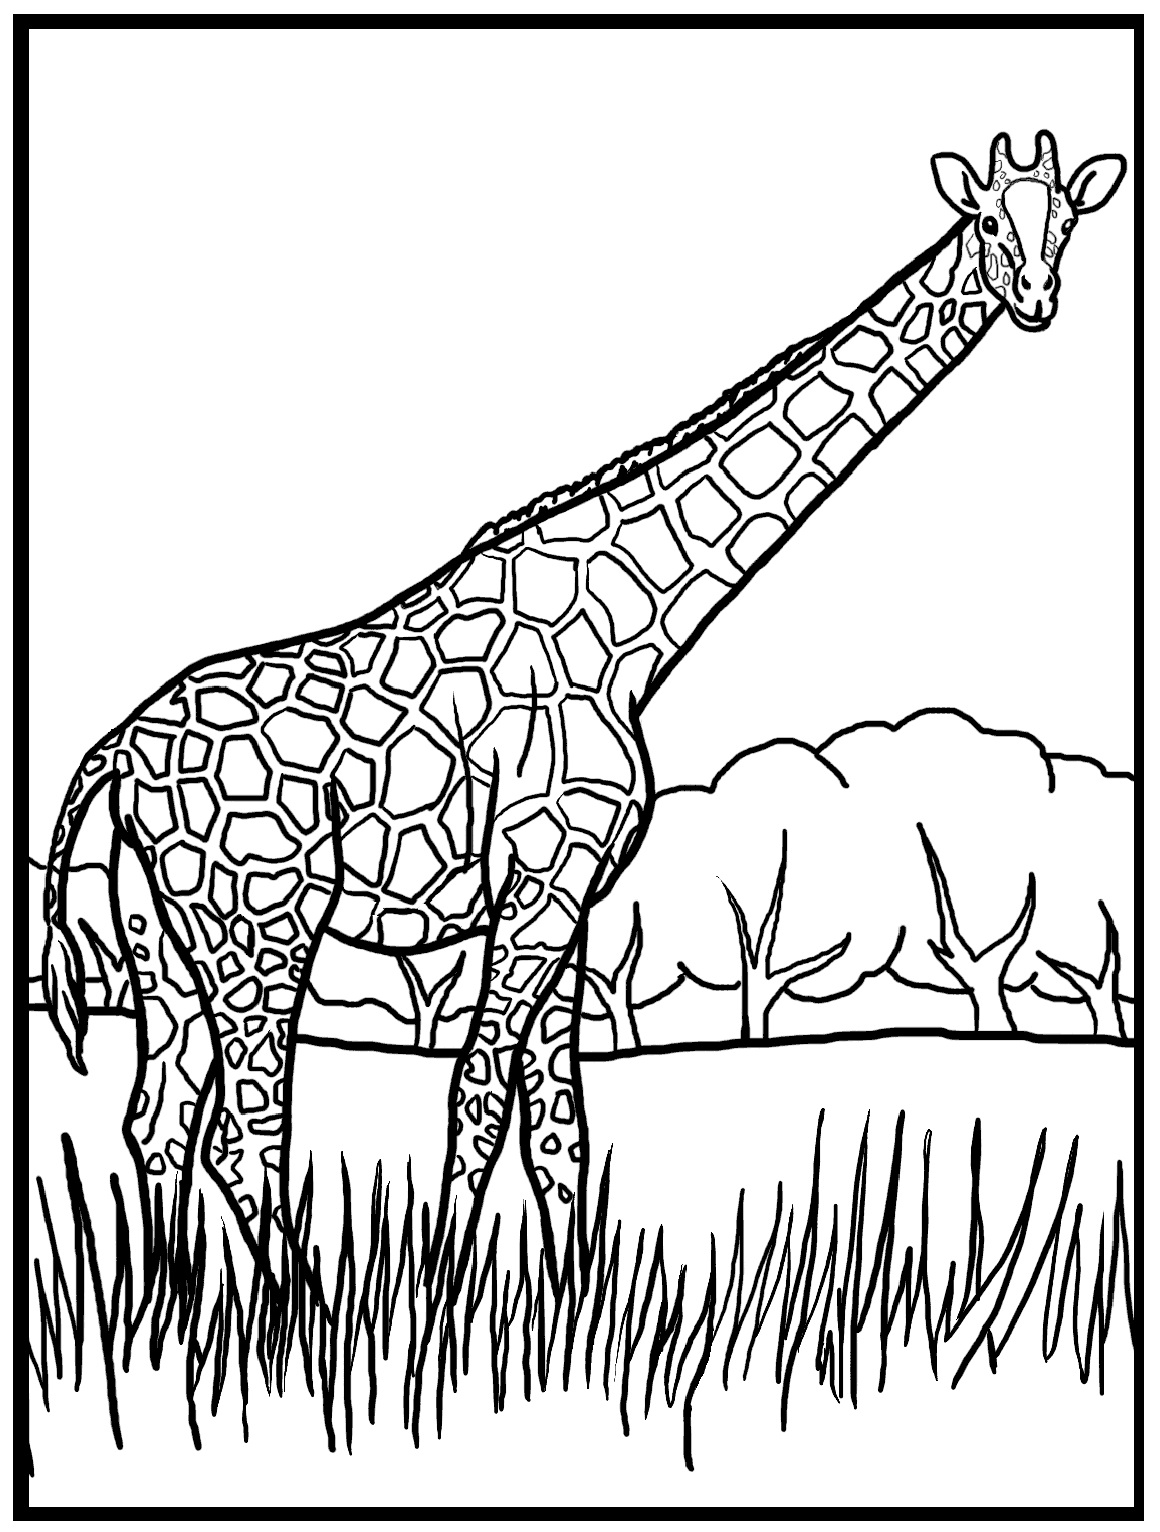 Giraffe Coloring Pages Brilliant Free Printable Giraffe Coloring Pages For Kids Inspiration Design